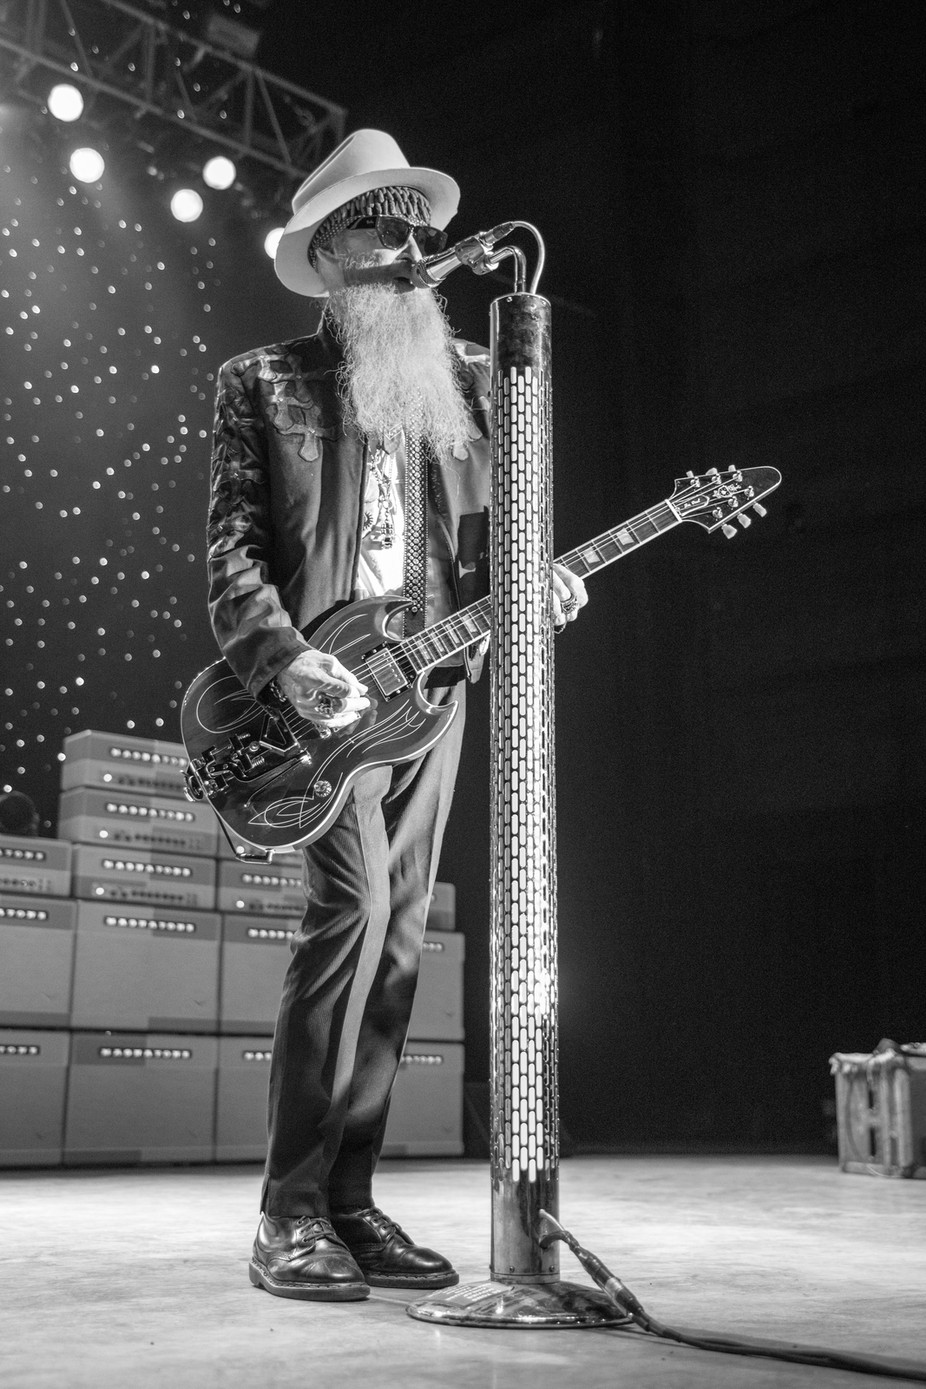 ZZ Top by Kmassie01 - Music And Concerts Photo Contest